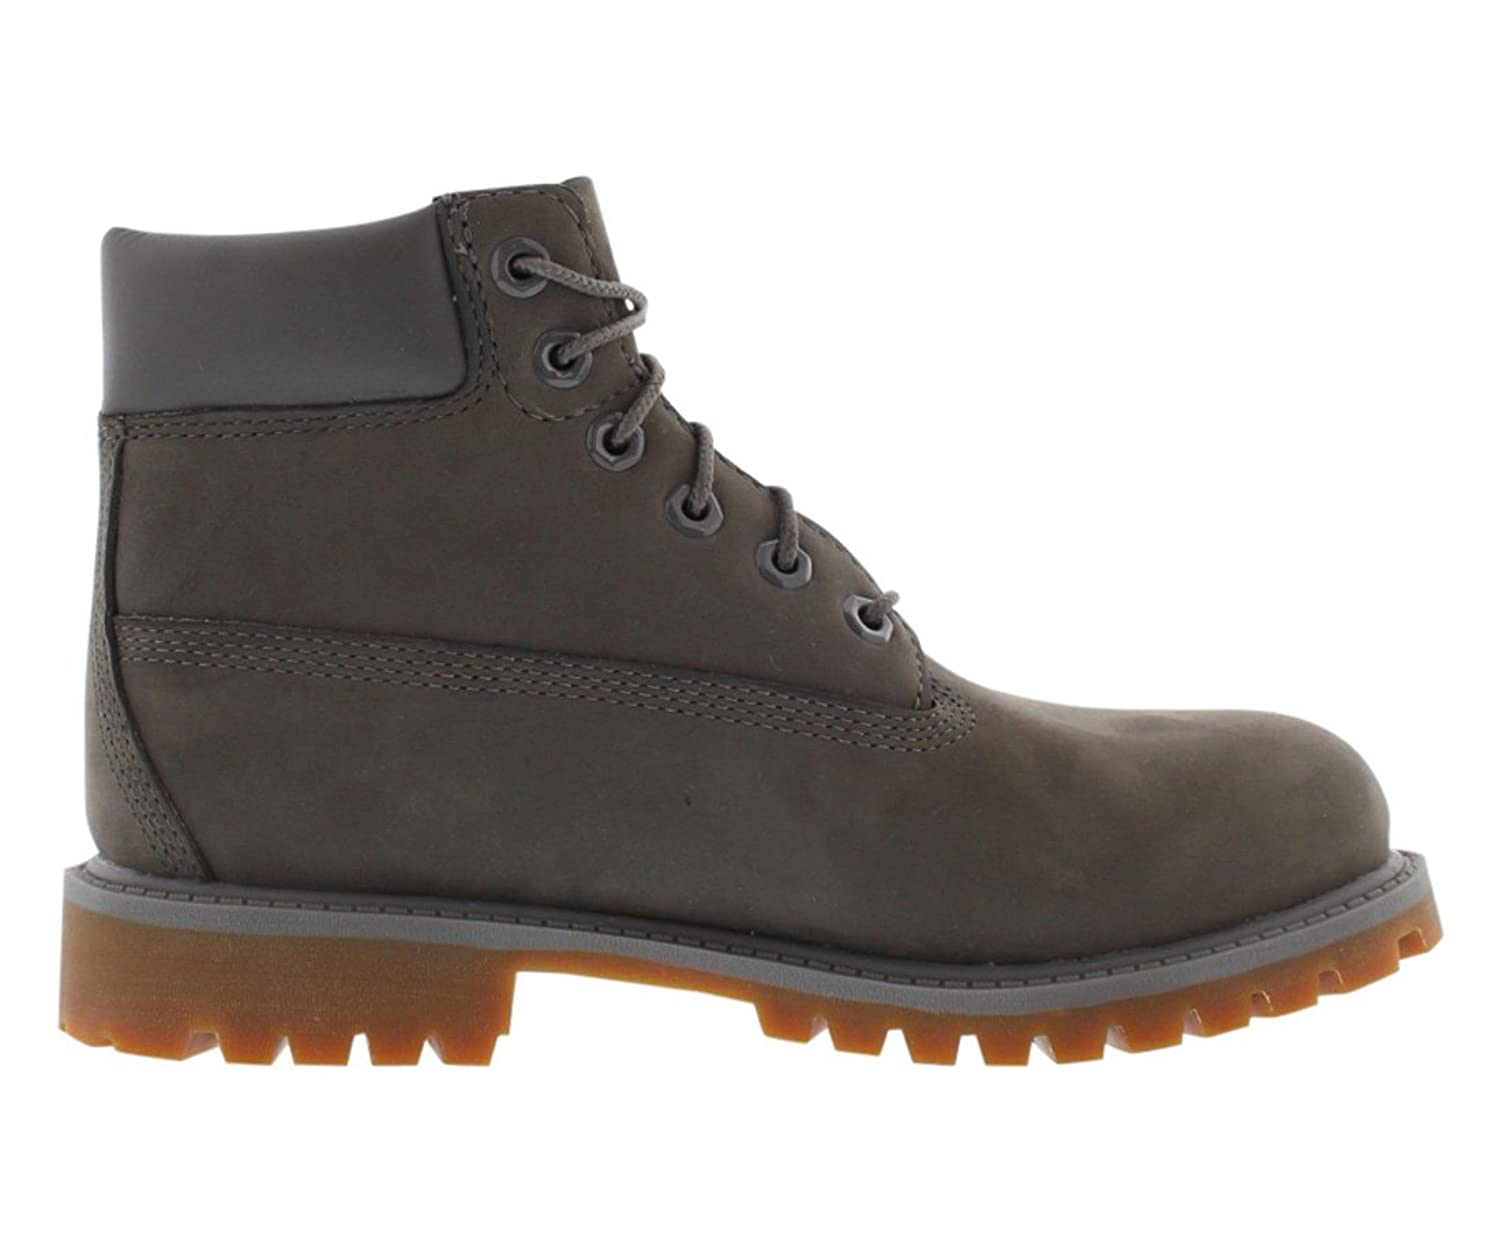 Amazon | TIMBERLAND SHOES-6 IN PREMIUM WP BOOT GREY A11CR-T SIZE 13 US | ブーツ